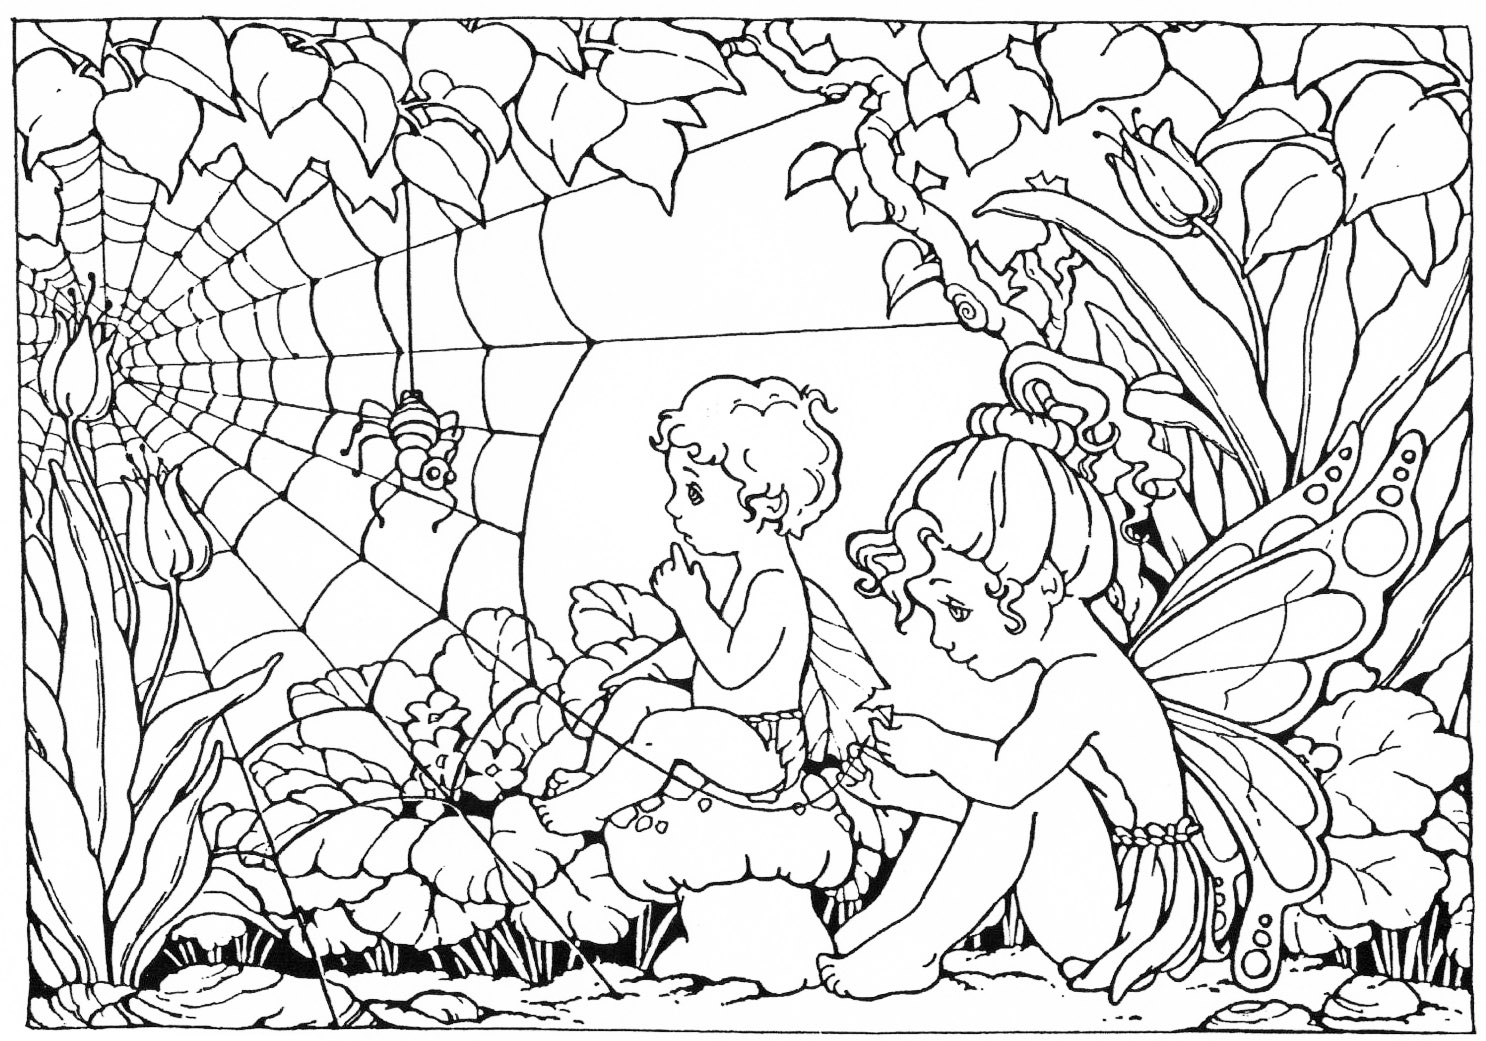 free fairy coloring pages for adults - Coloring Pages Collection Fairy Coloring Pages